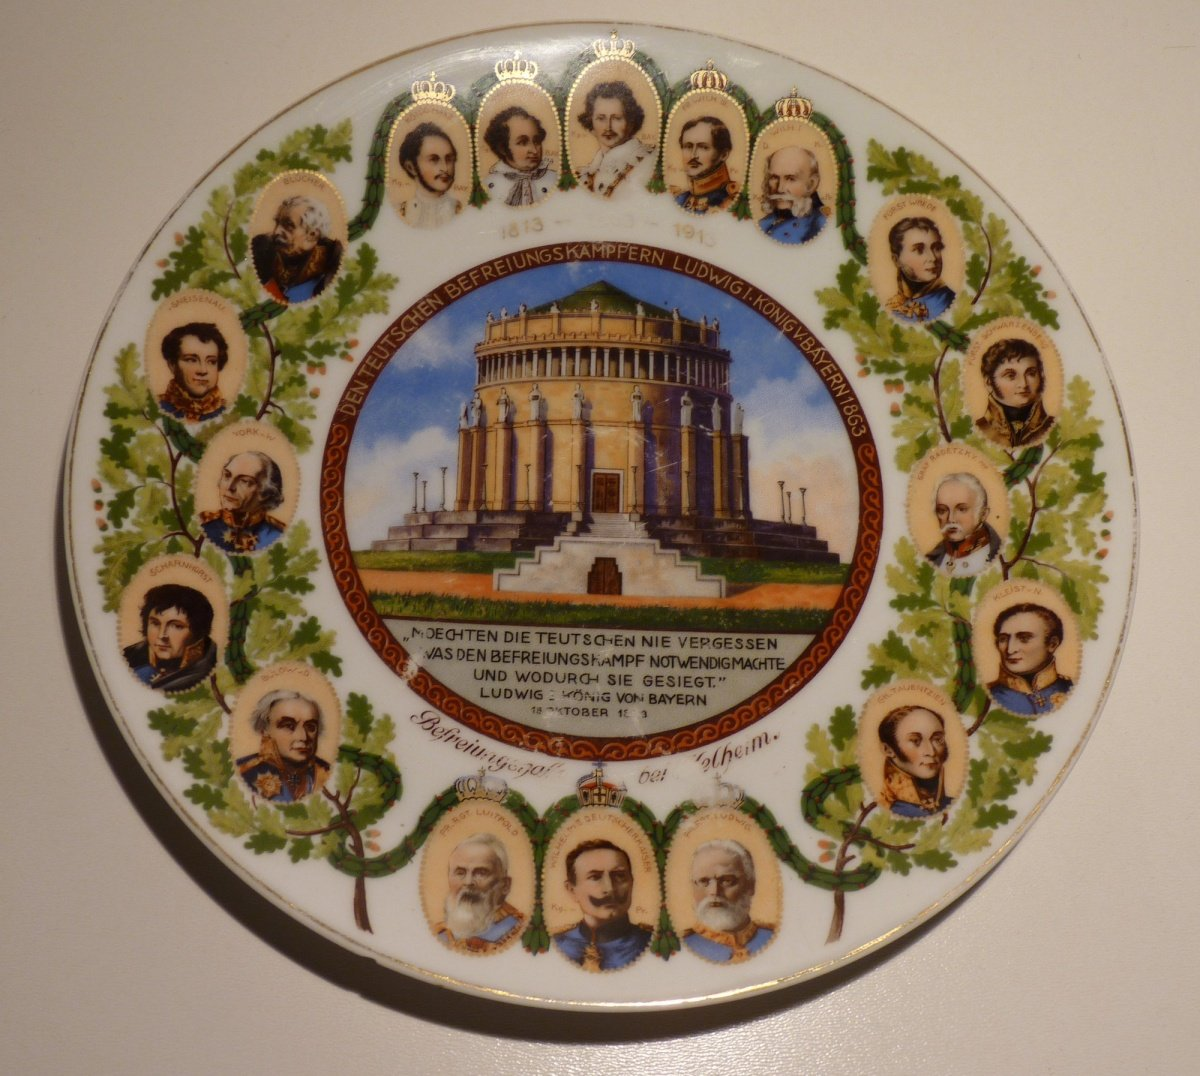 Plate with portraits of monarchs and great men 1813 - 1913